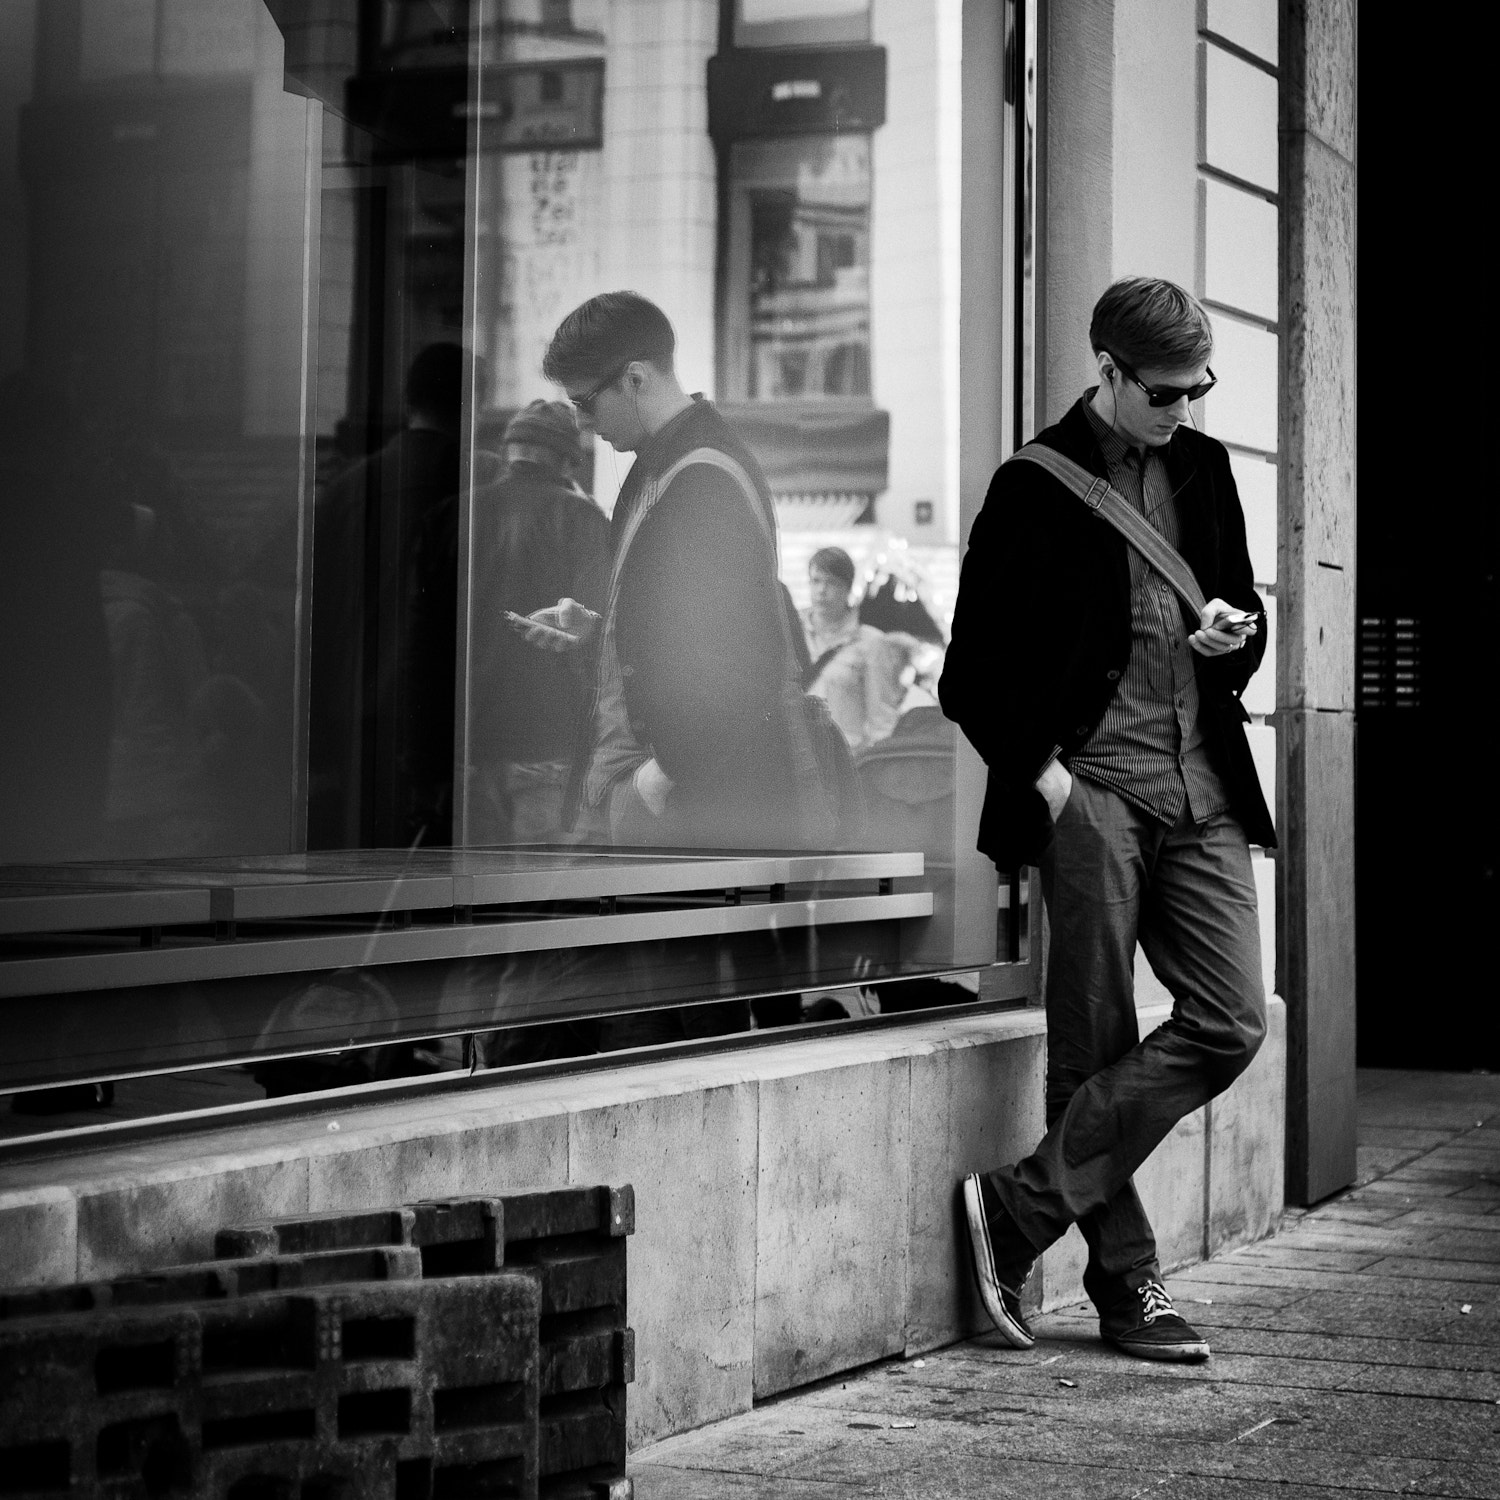 Photograph Waiting by Markus Franke on 500px